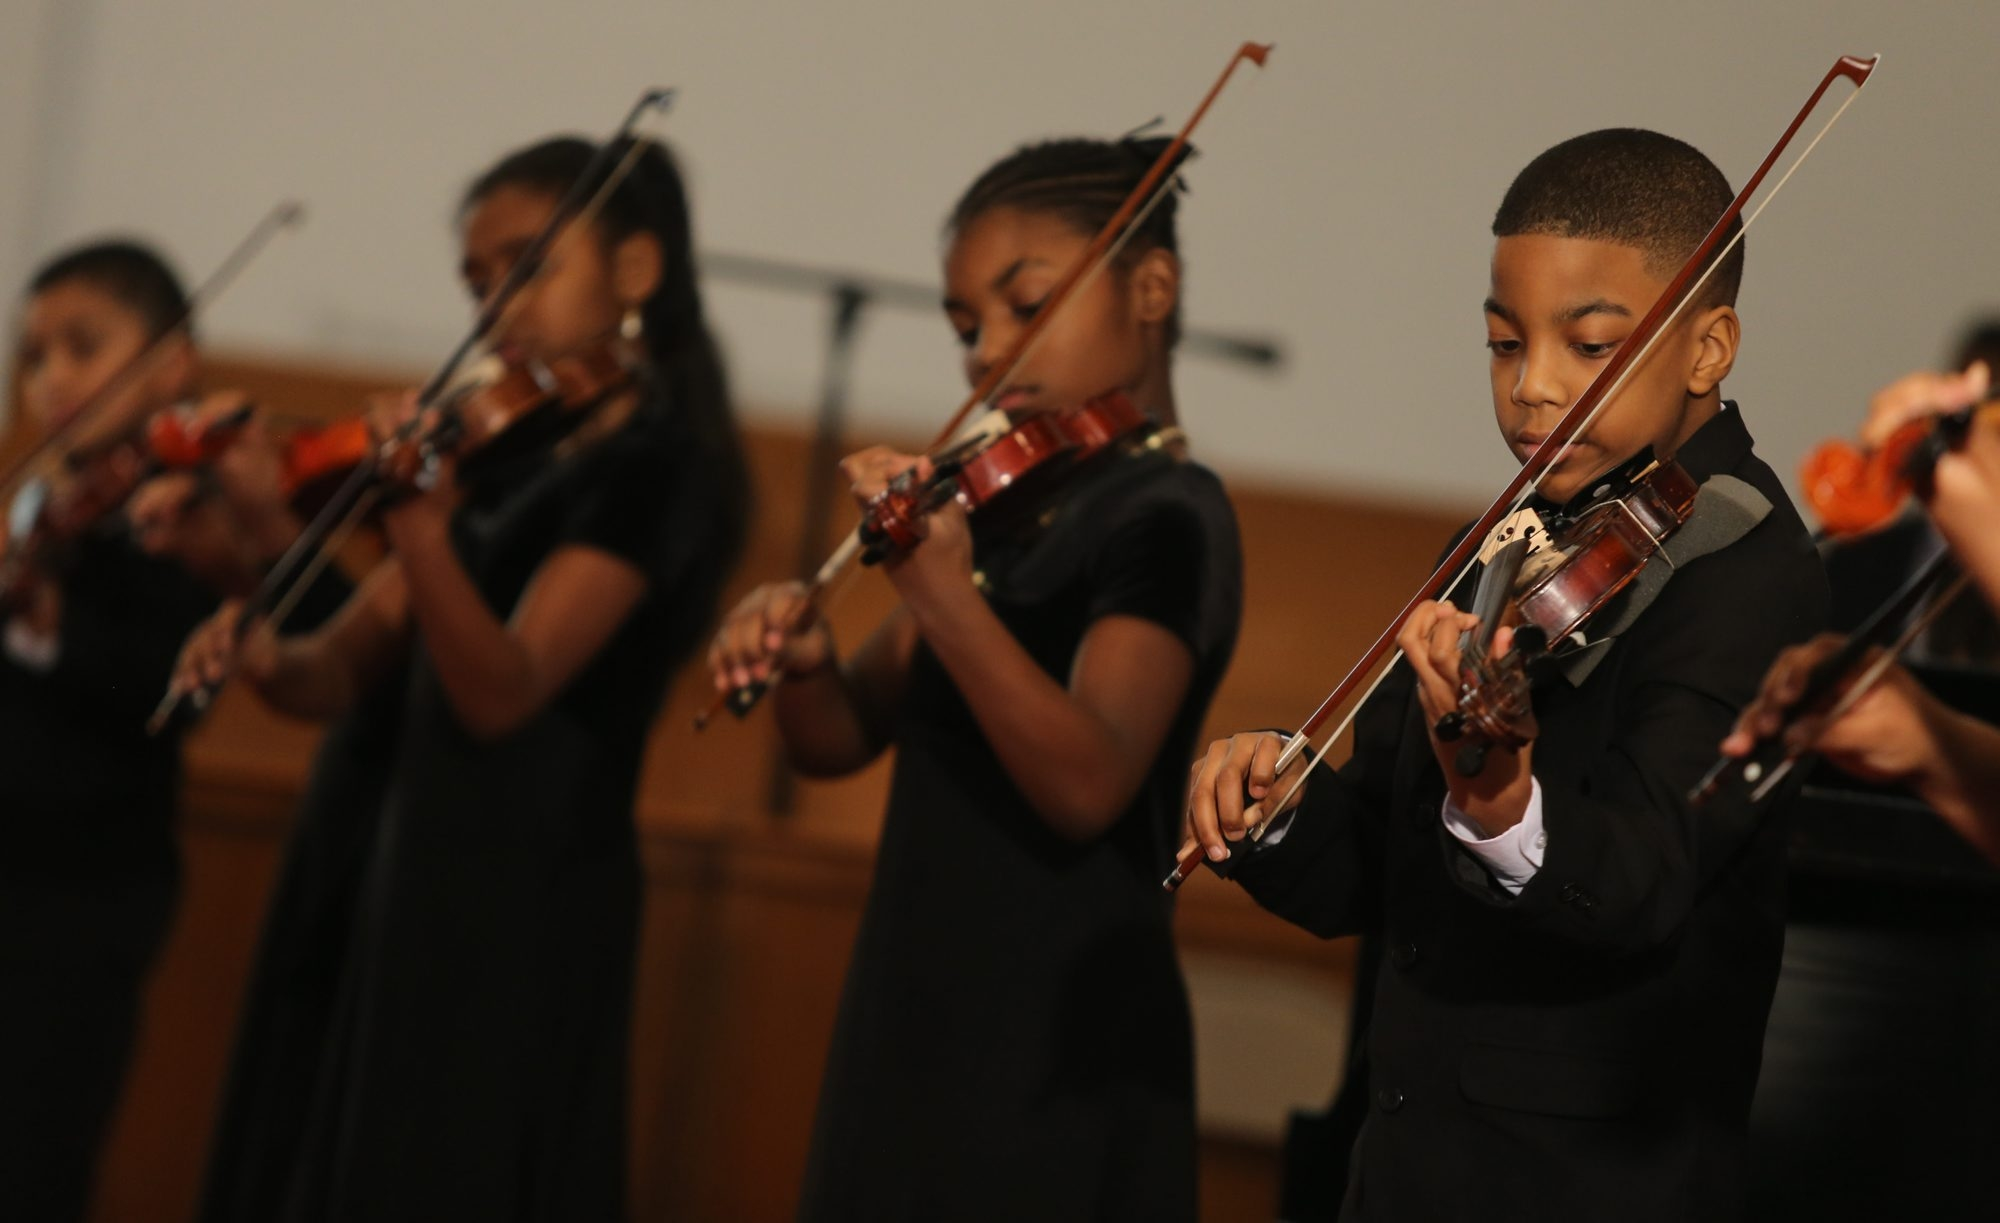 Students perform on violin during the Henri L. Muhammad School of Music's Voice of My Heart Recital Series at the First Shiloh Baptist Church in Buffalo on Sunday.